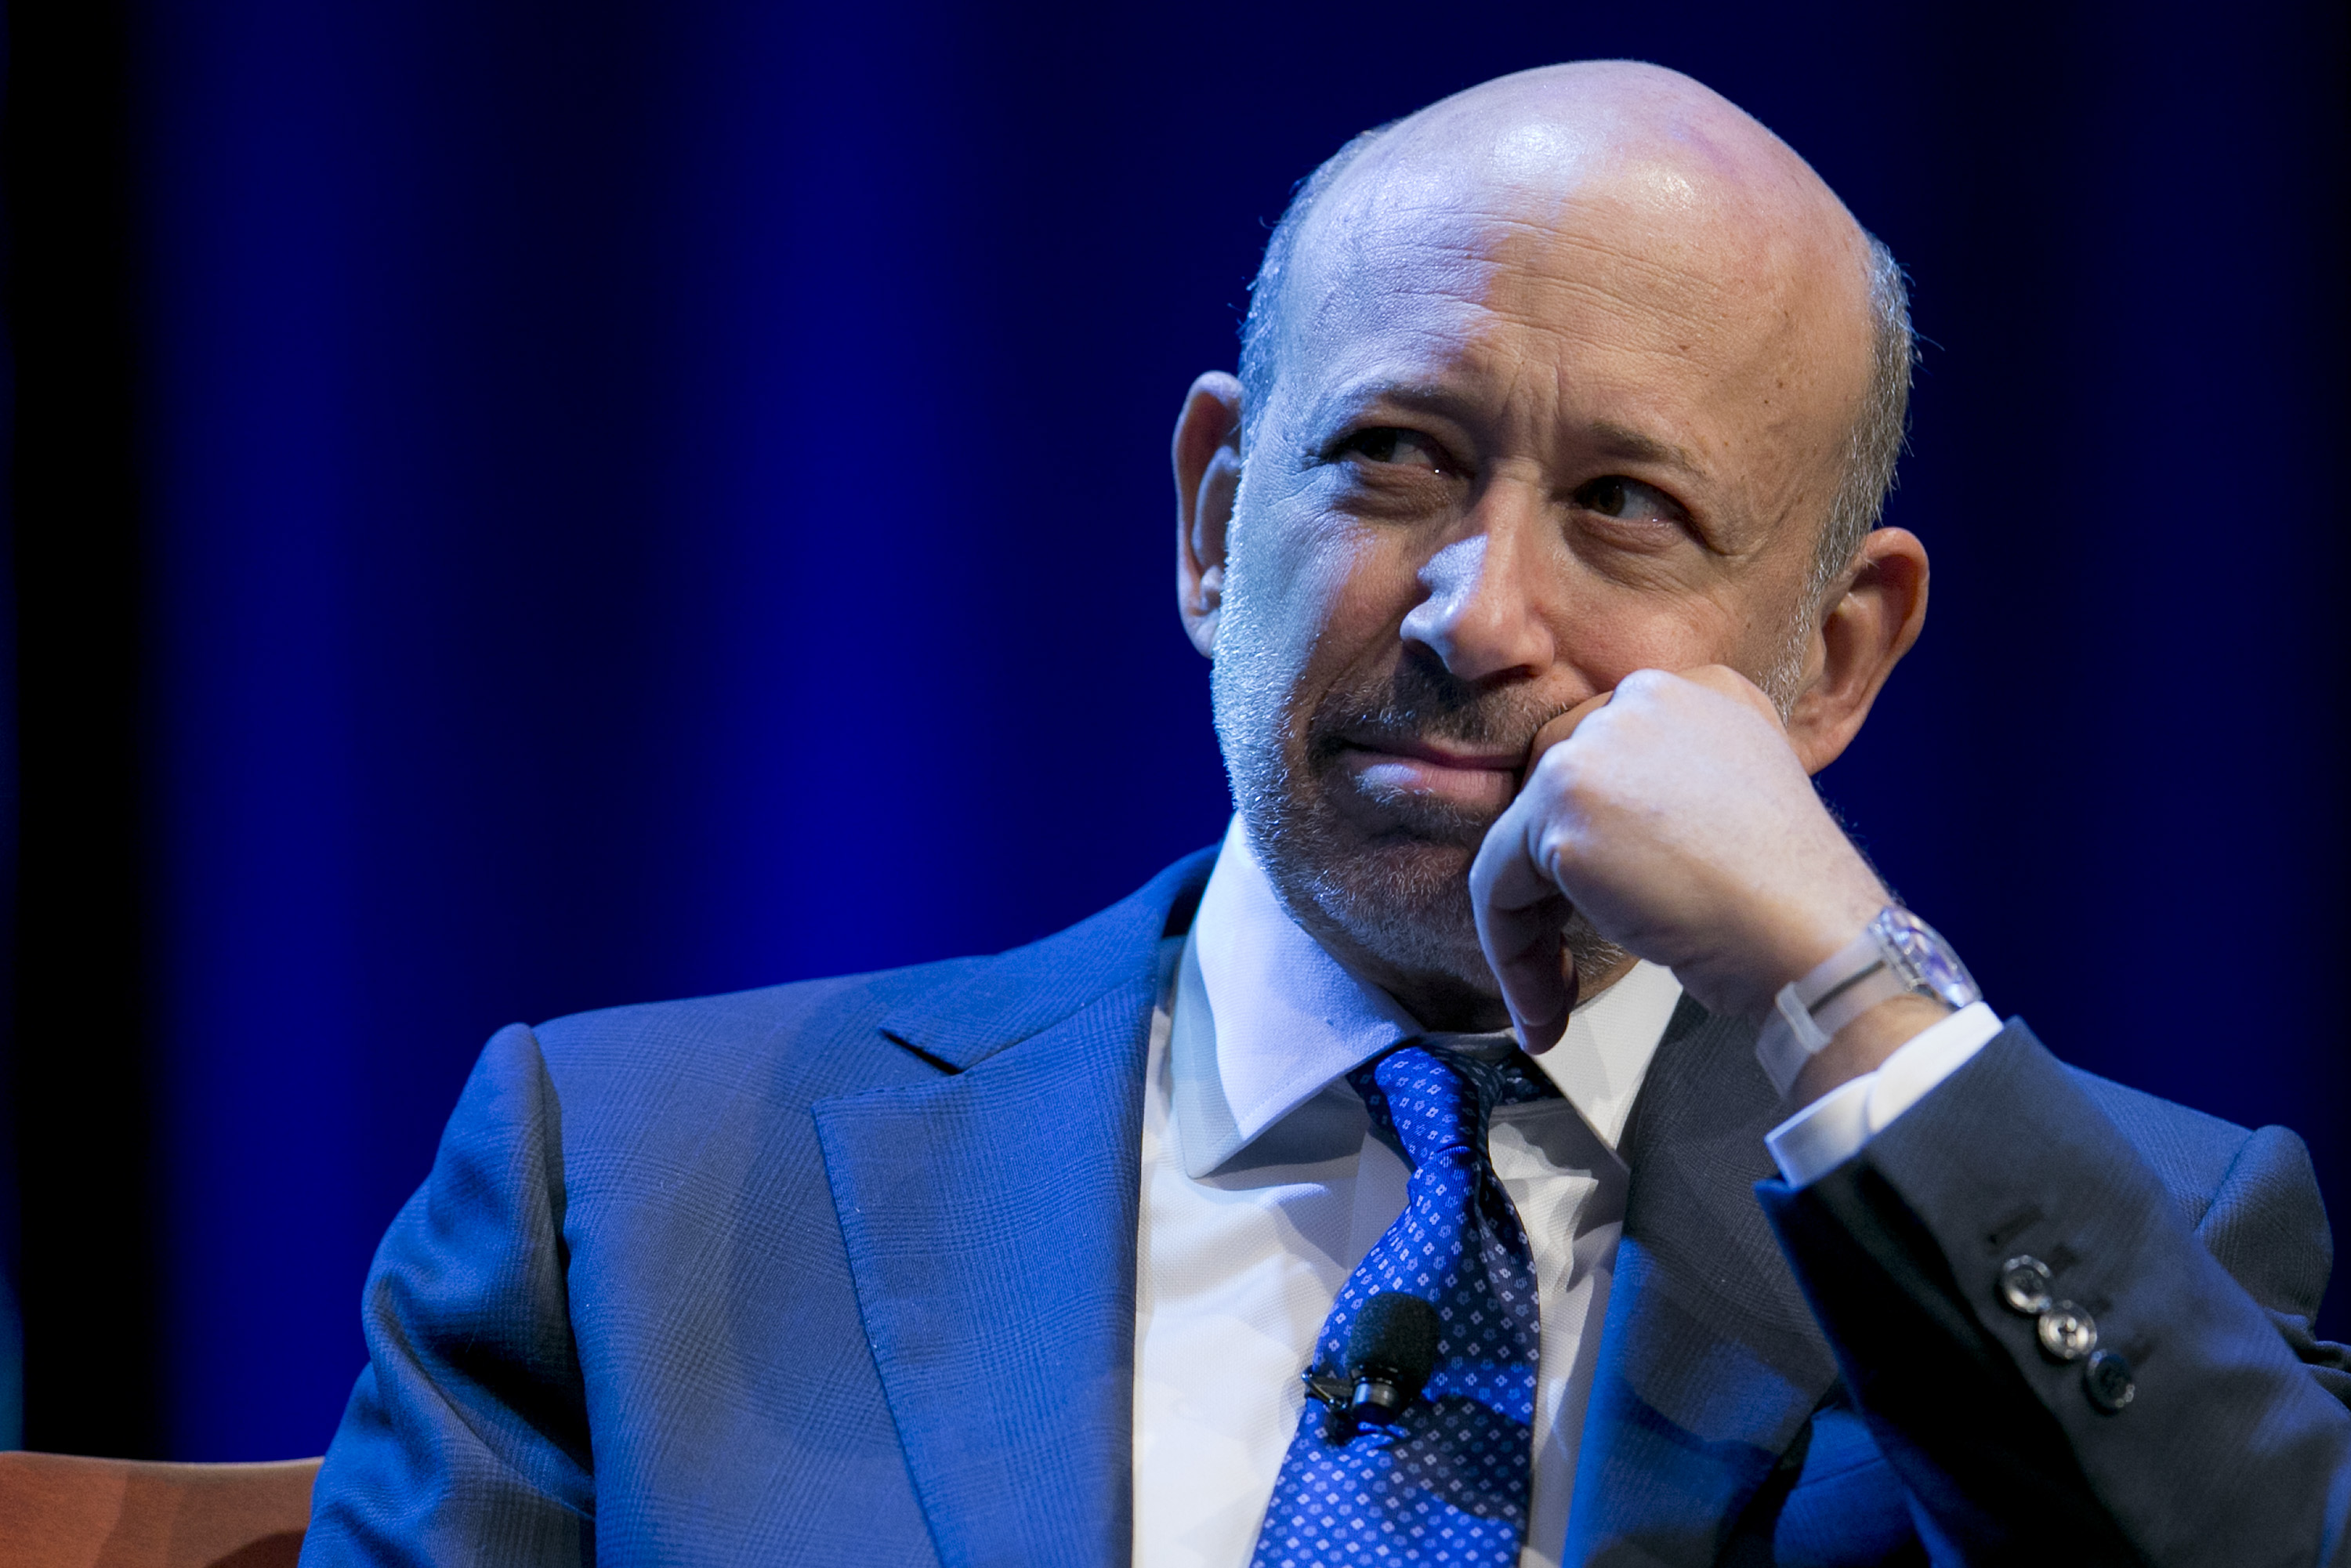 Goldman Sachs CEO Lloyd Blankfein Addresses The Investment Company Institute Meeting